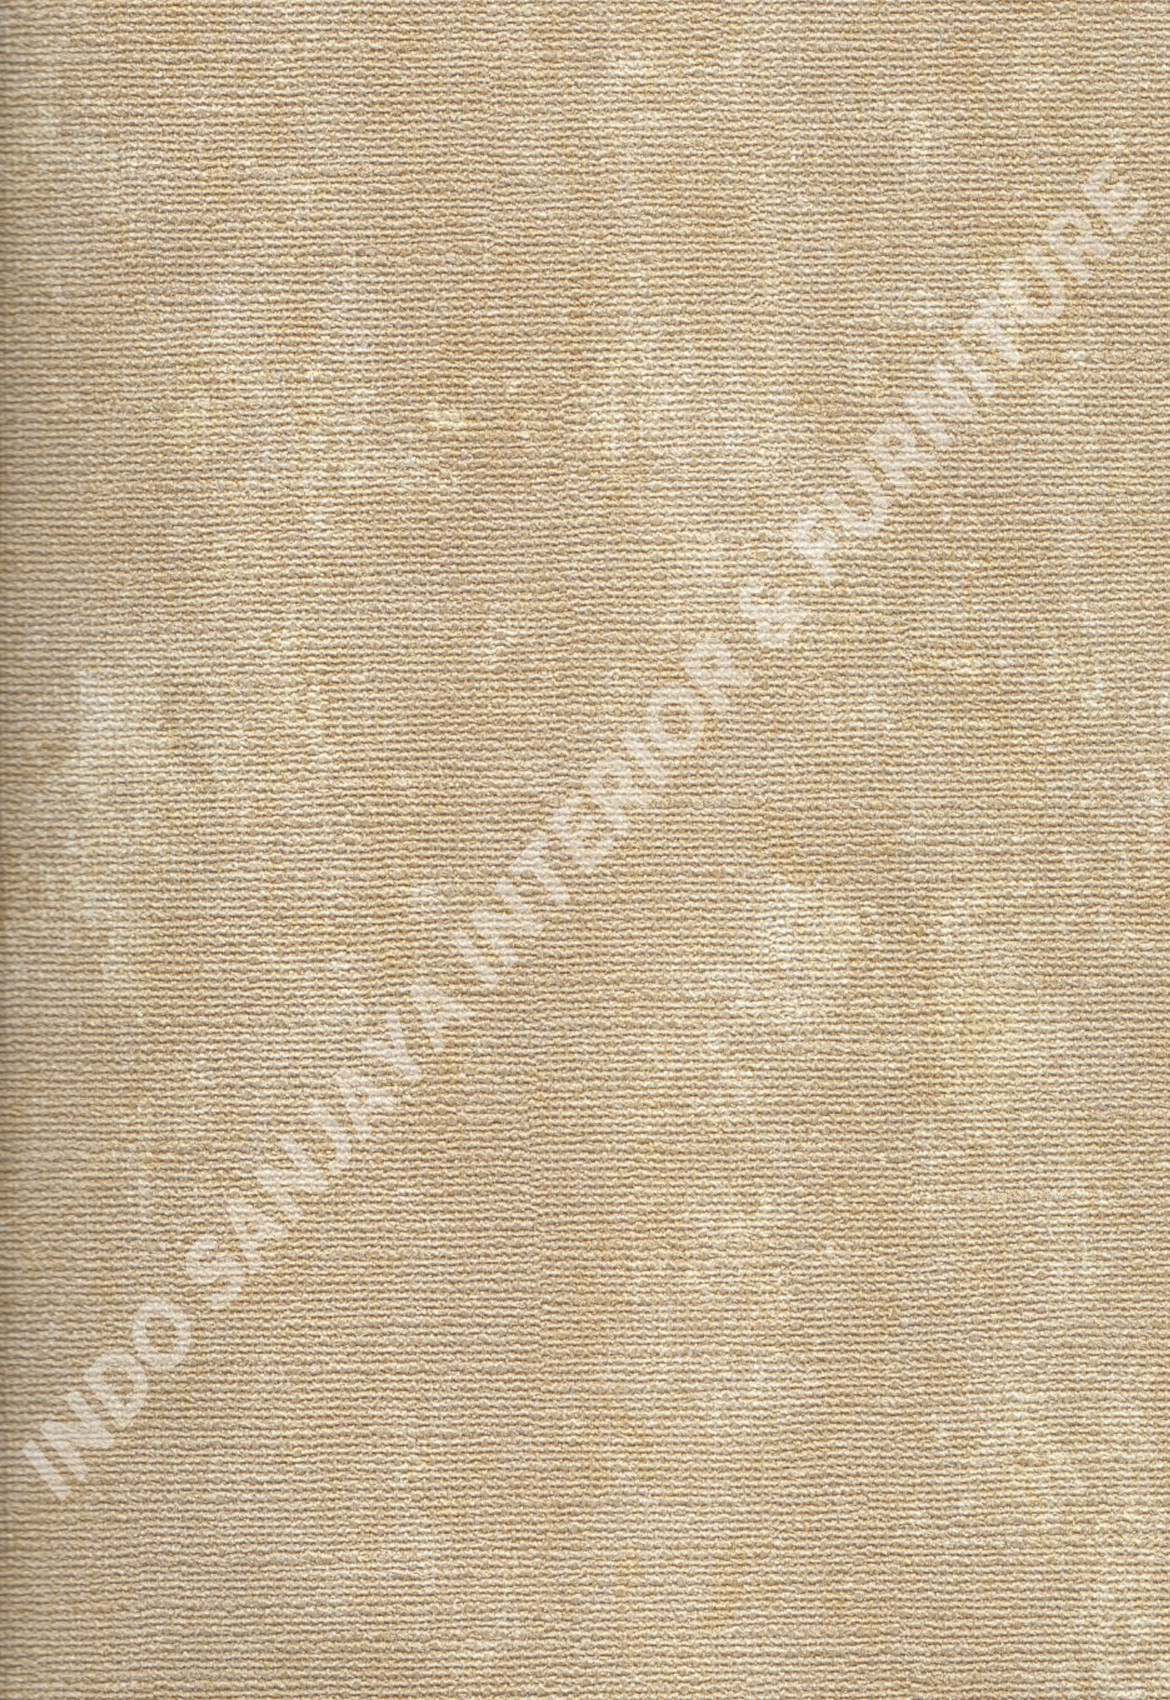 wallpaper   Wallpaper Bunga DL13201:DL13201 corak  warna